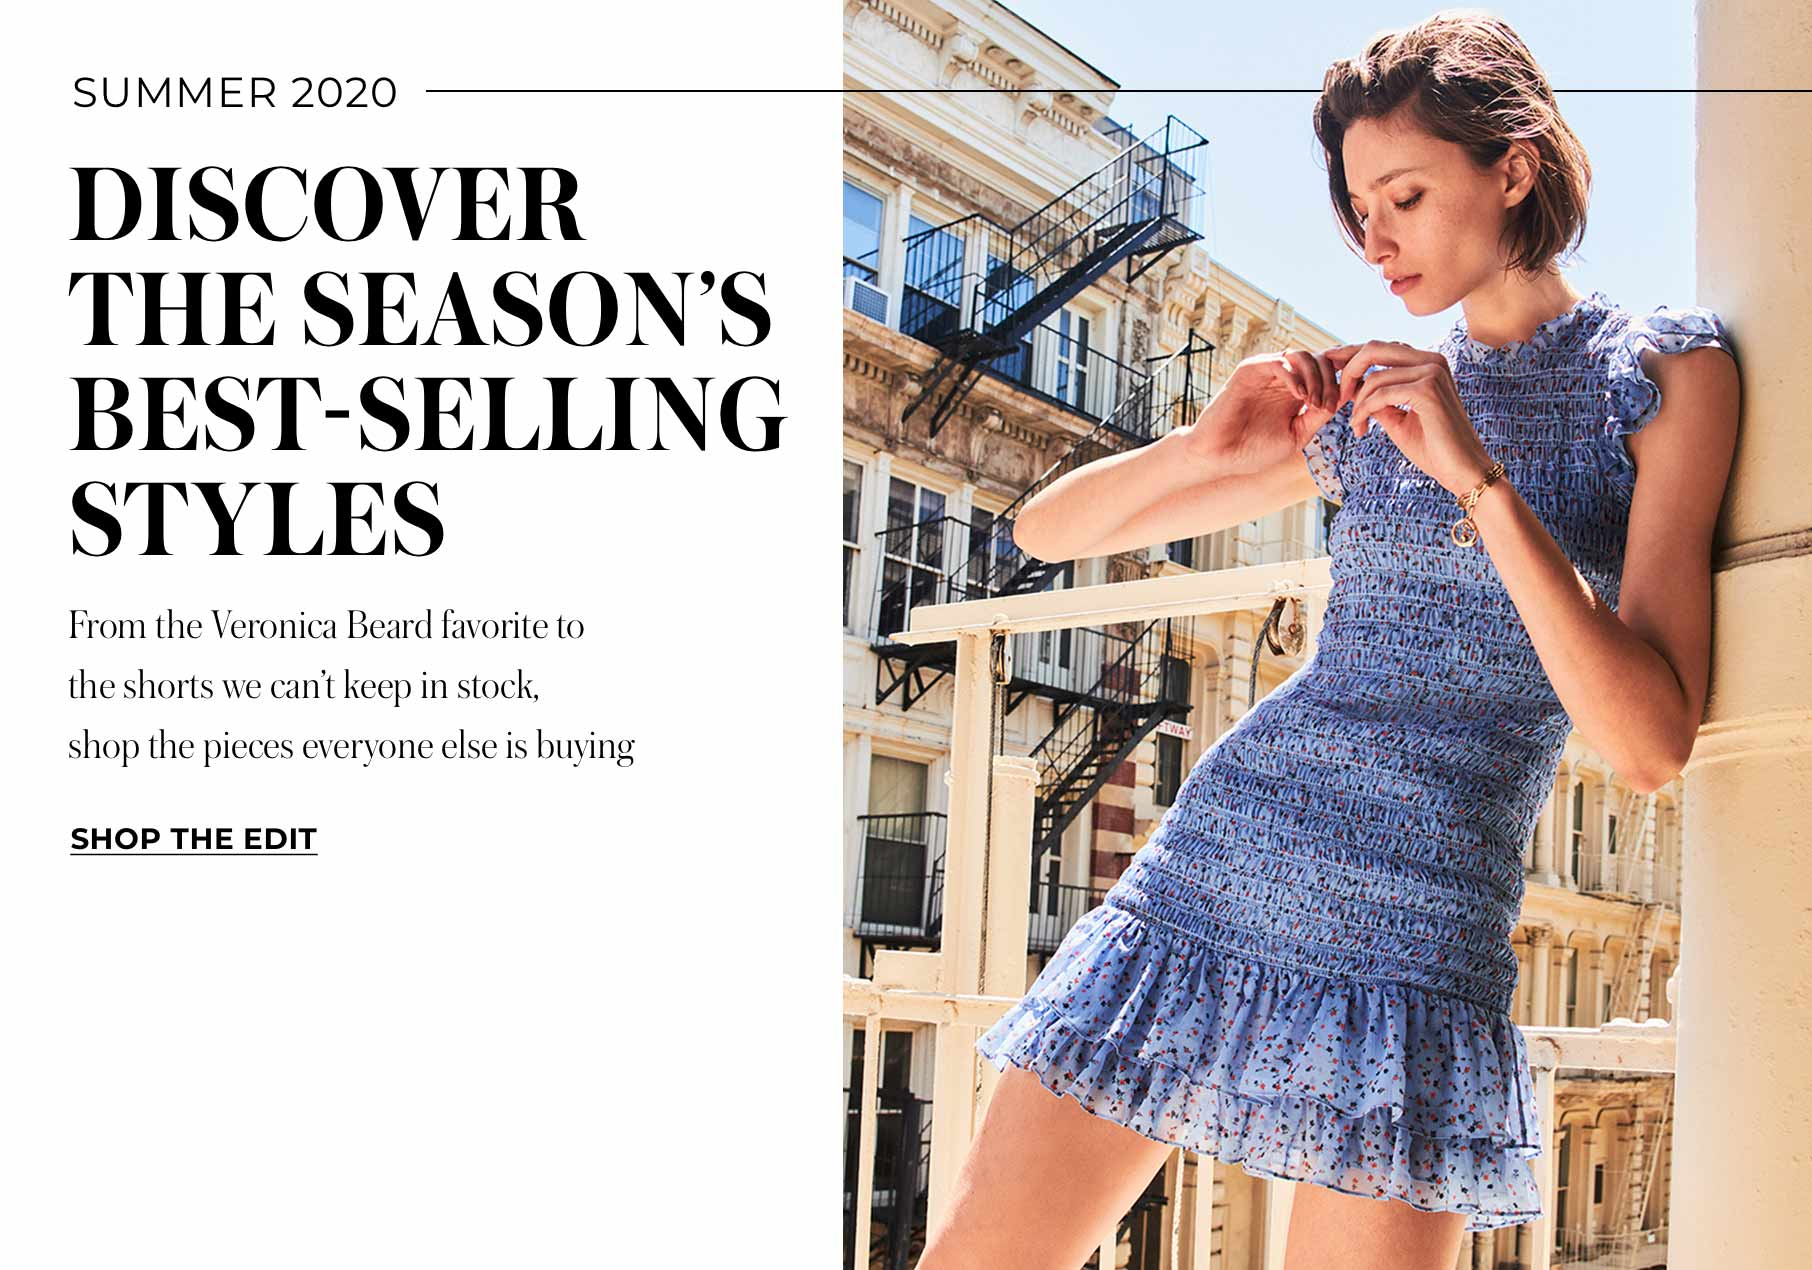 Discover The Season's Best-Selling Styles